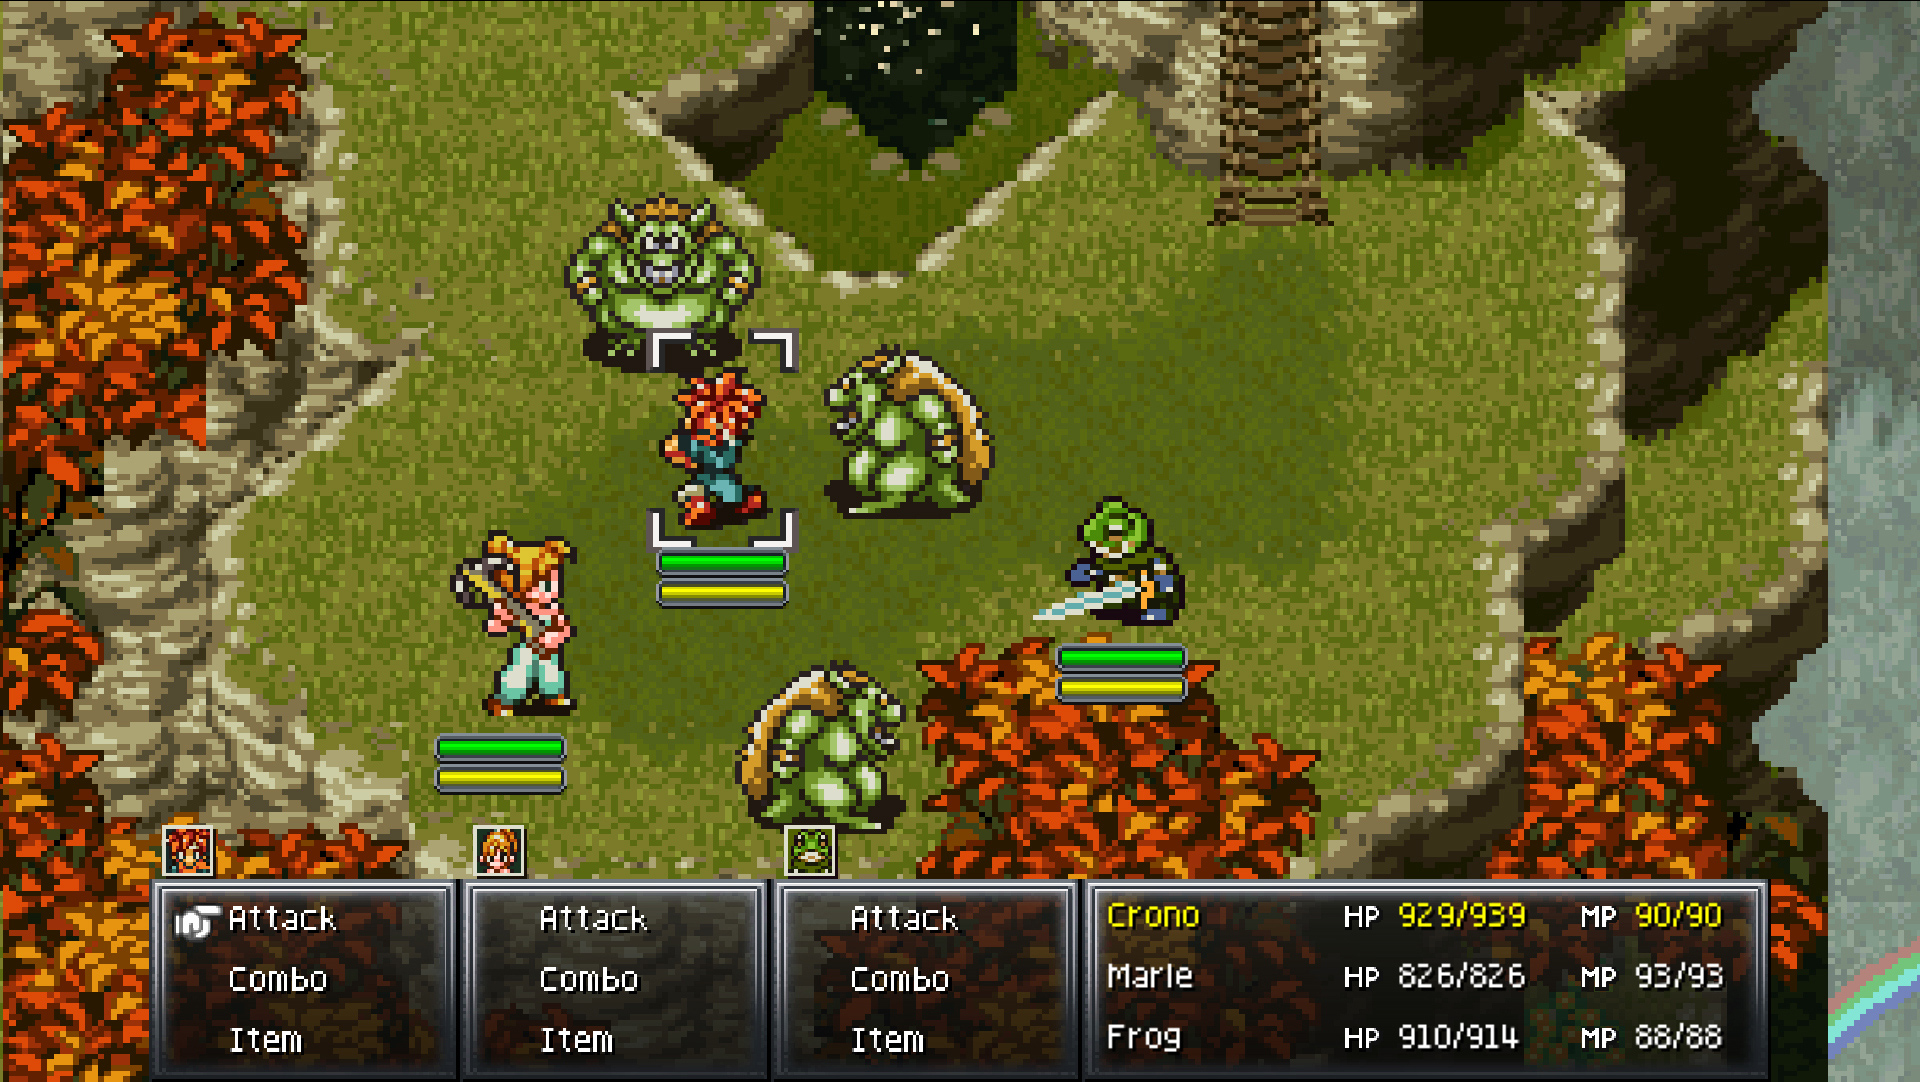 Square Enix is still cleaning up the PC port of Chrono Trigger screenshot